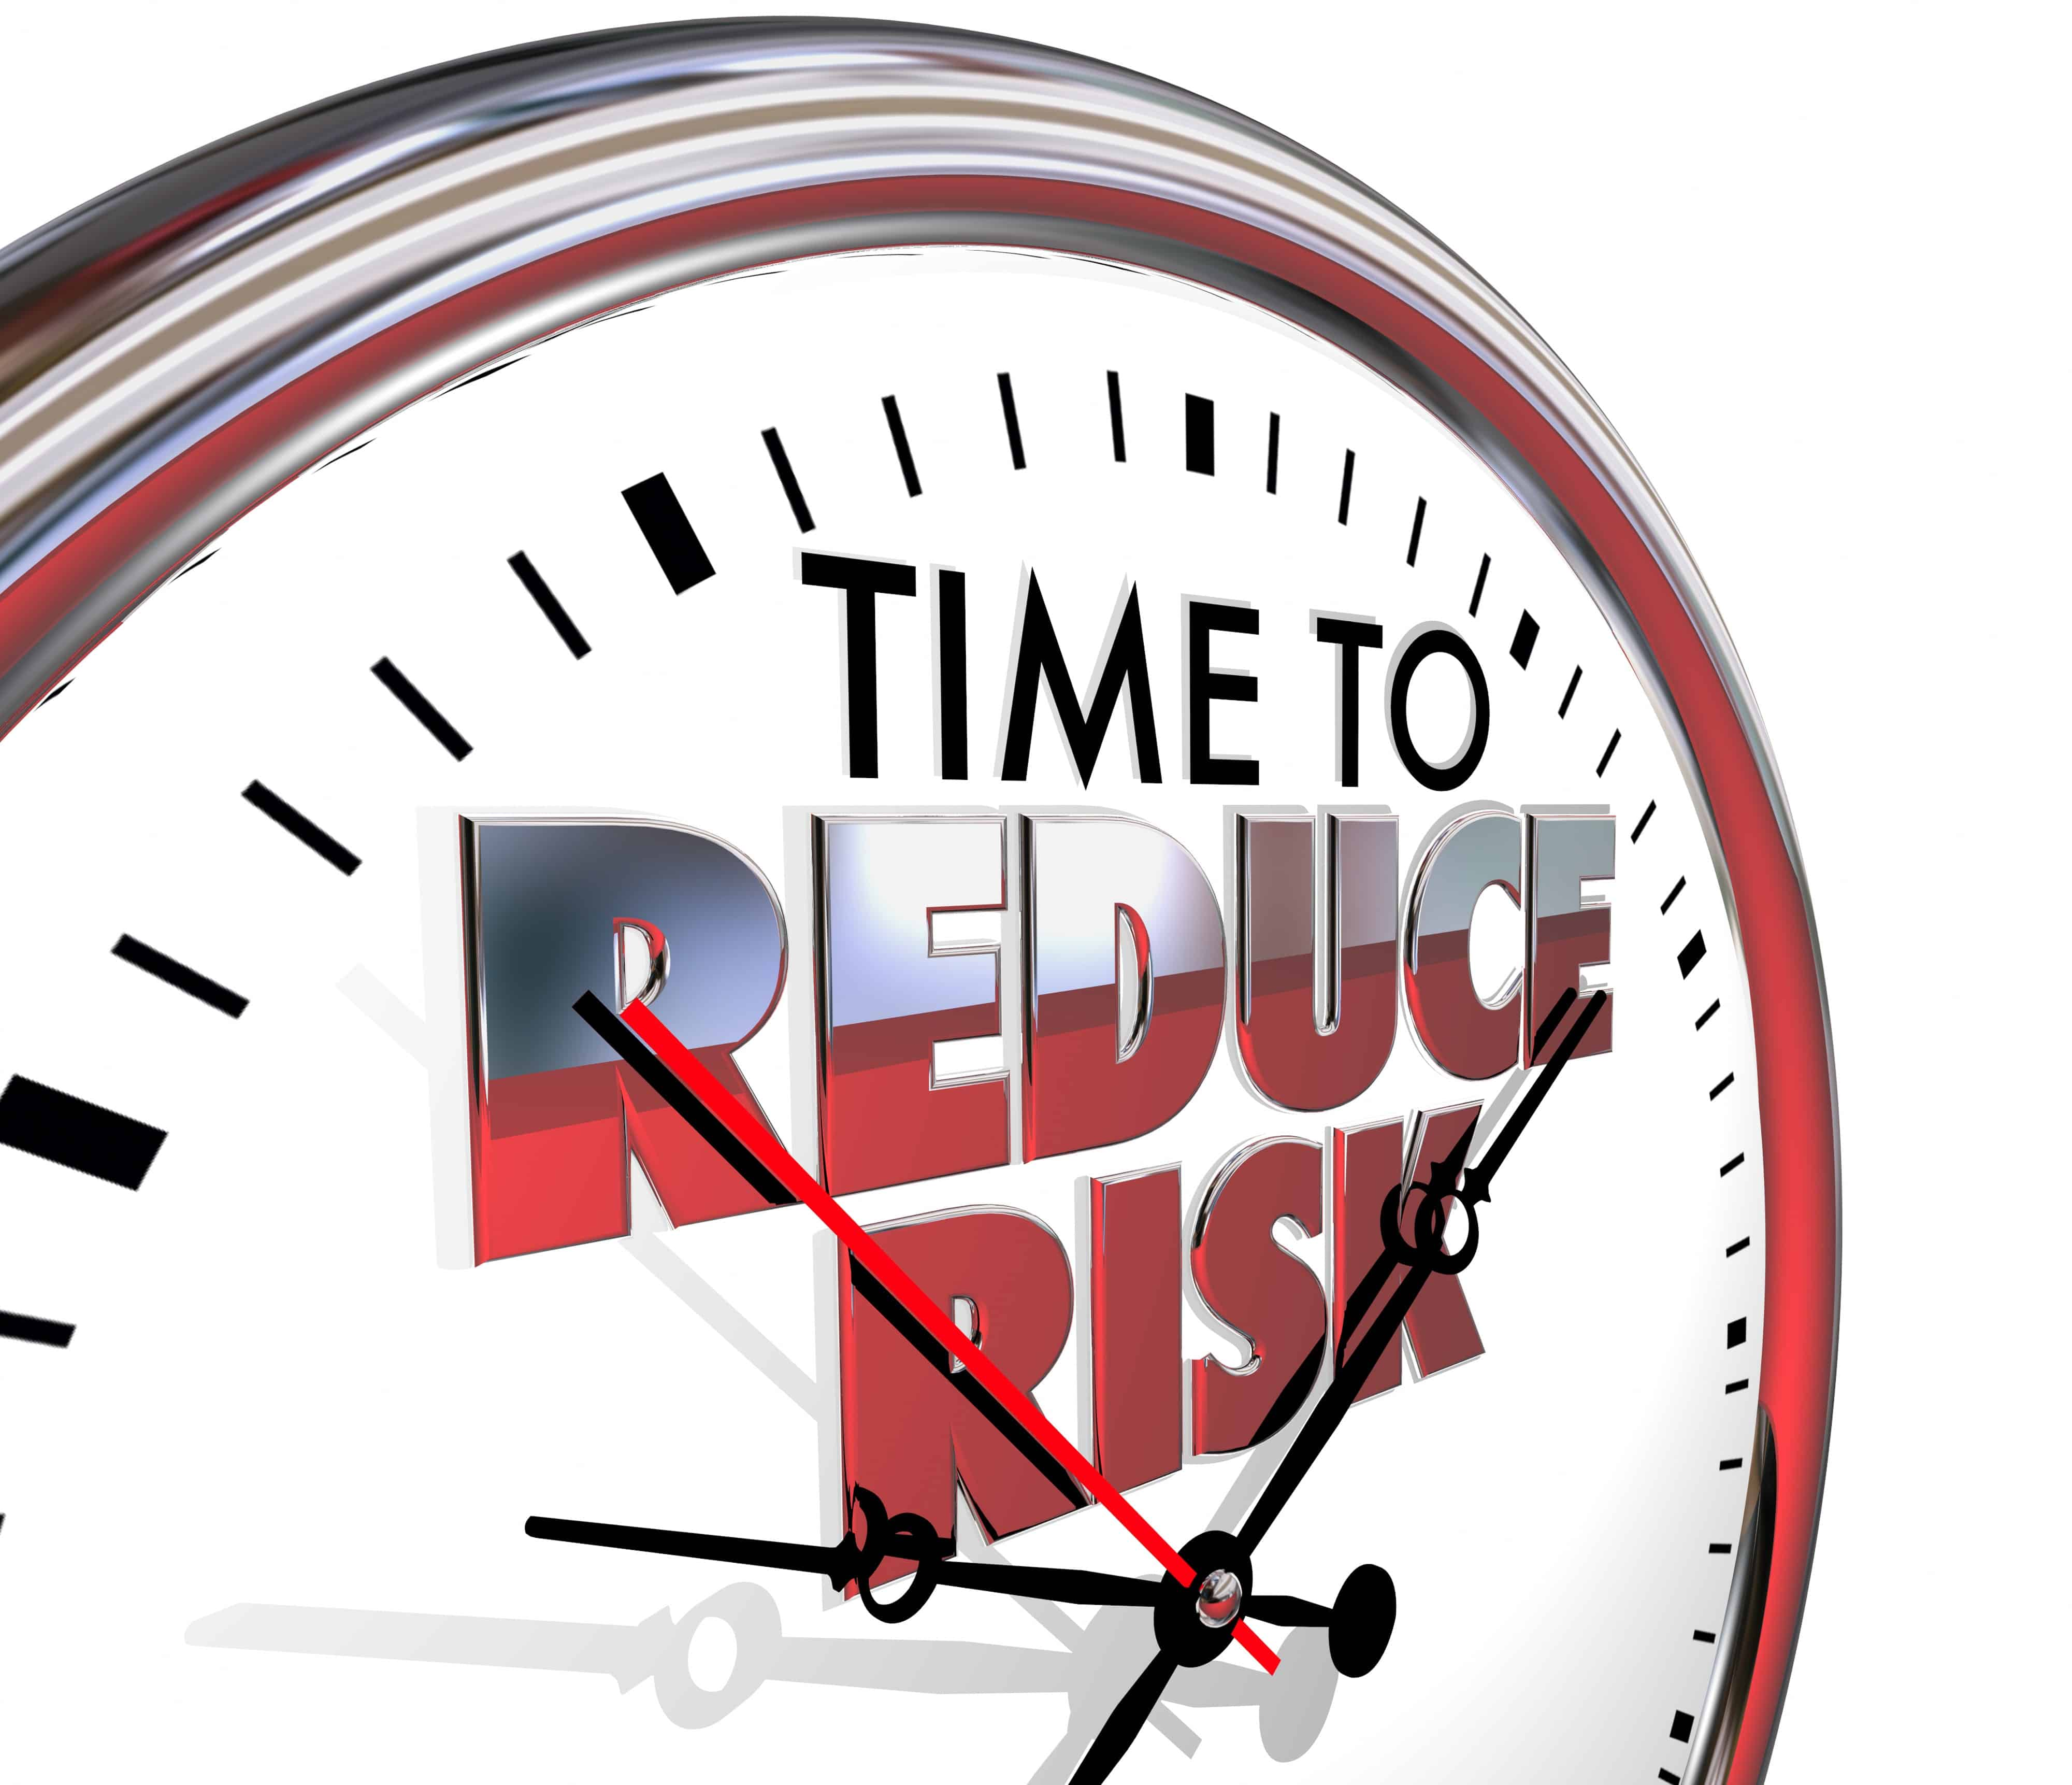 Reduce Risk Clock min